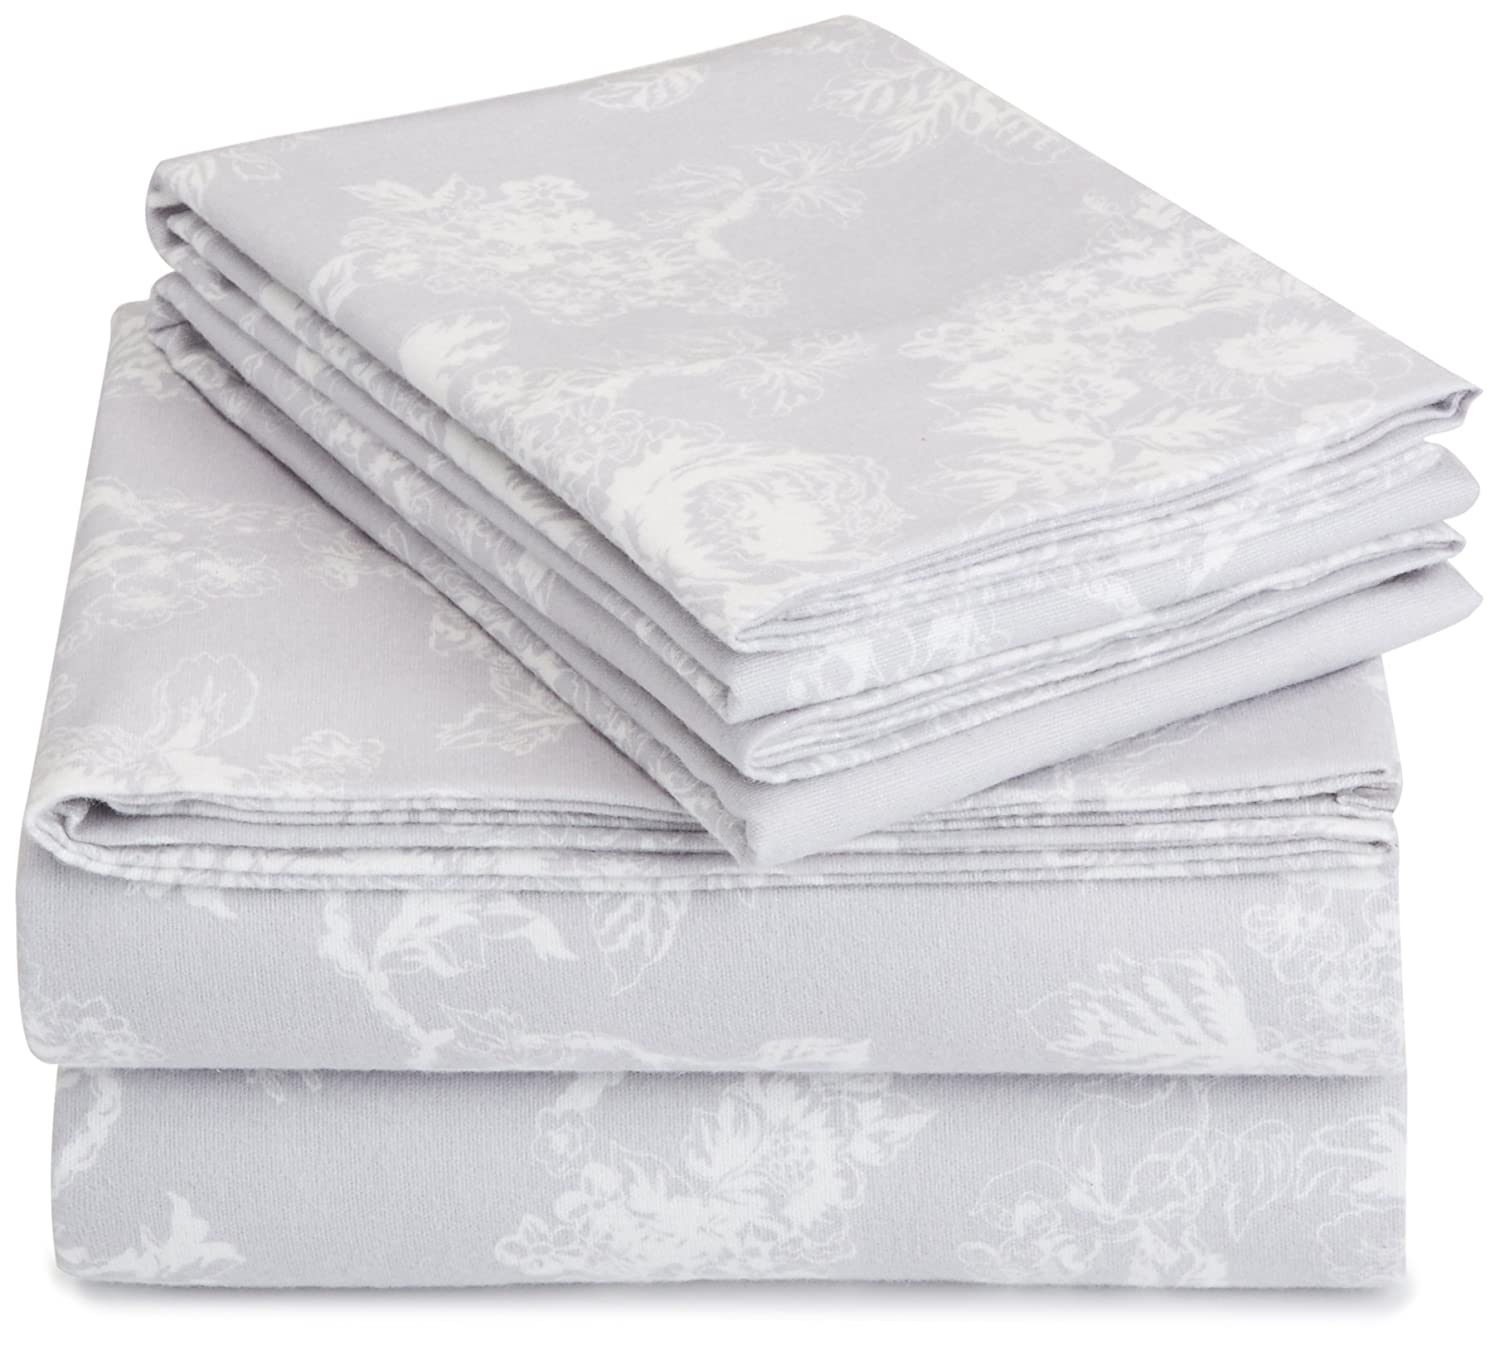 AmazonBasics Printed Lightweight Flannel Sheet Set - Full, Floral Grey